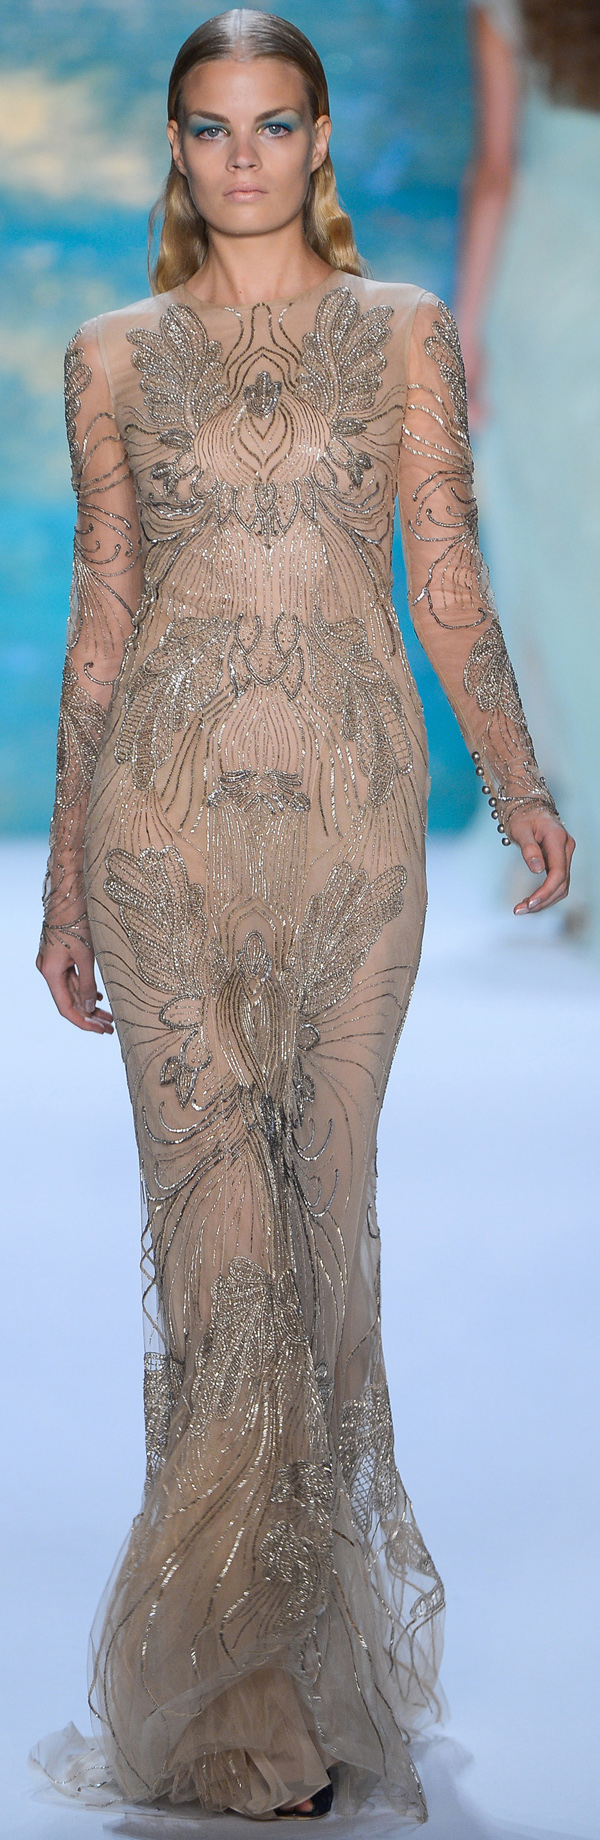 Monique Lhuillier Spring Summer 2013 Ready to Wear